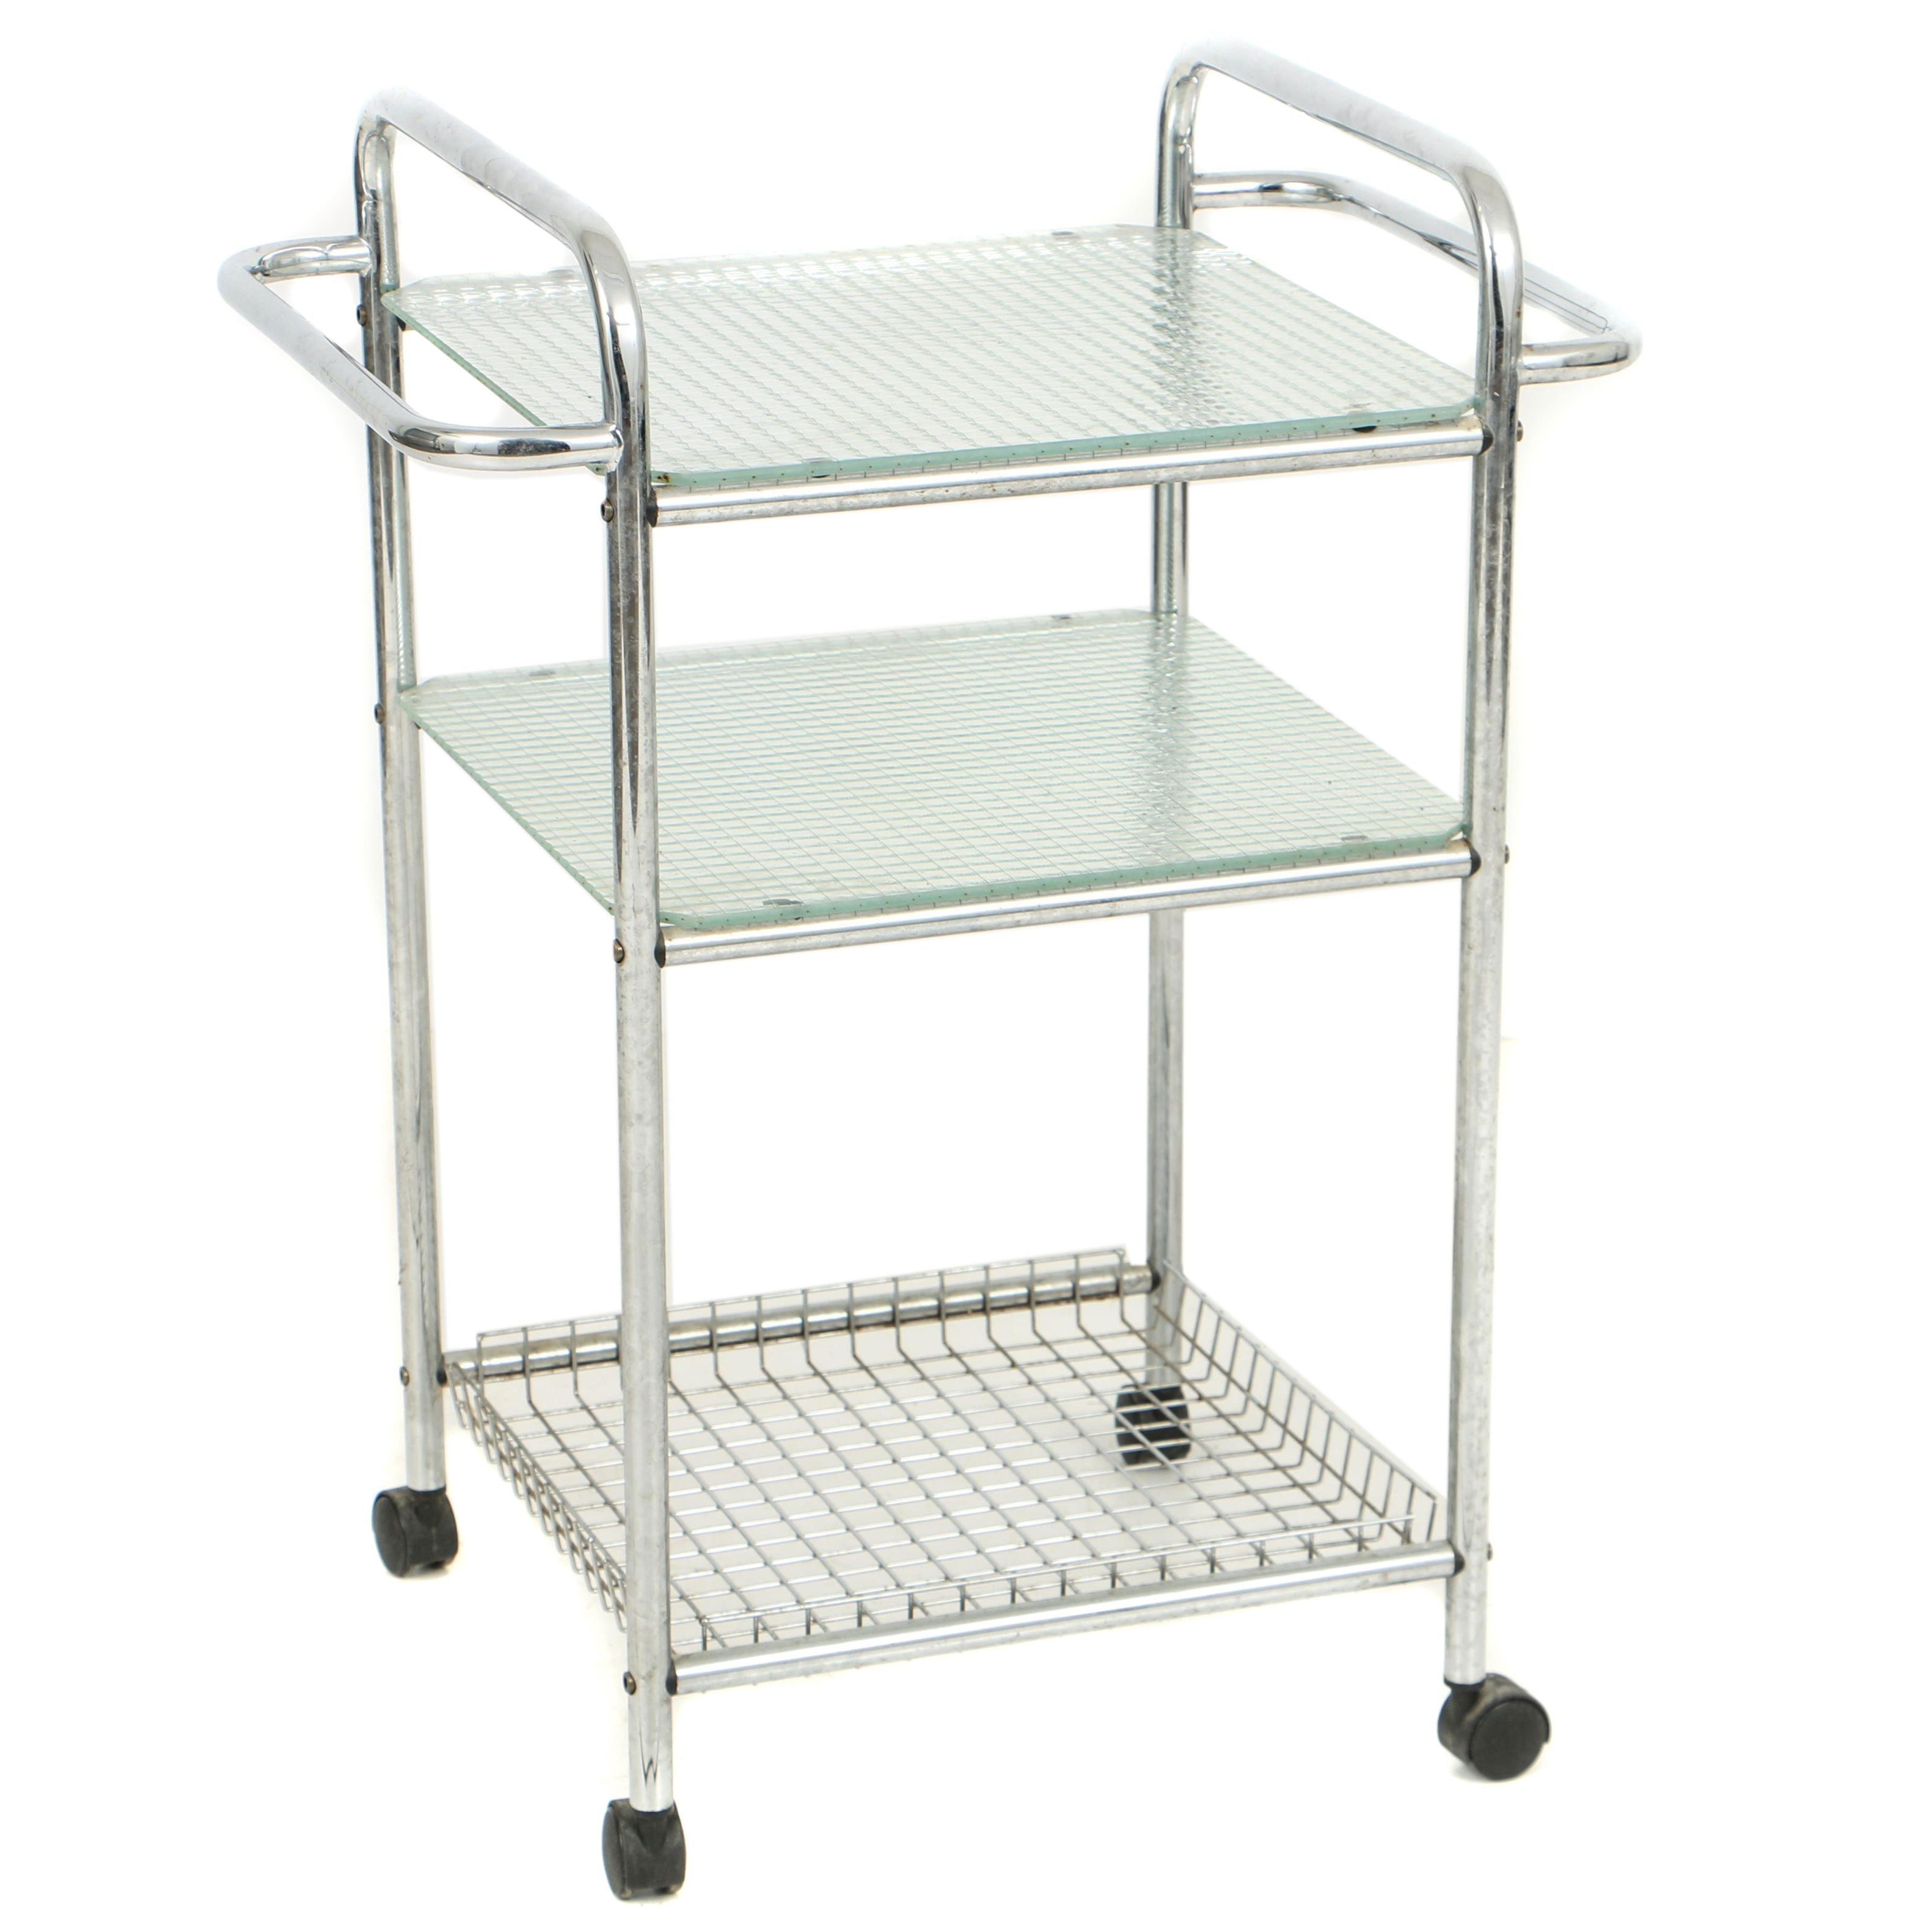 Vintage Modernist Style Chrome Serving Cart with Glass Shelves